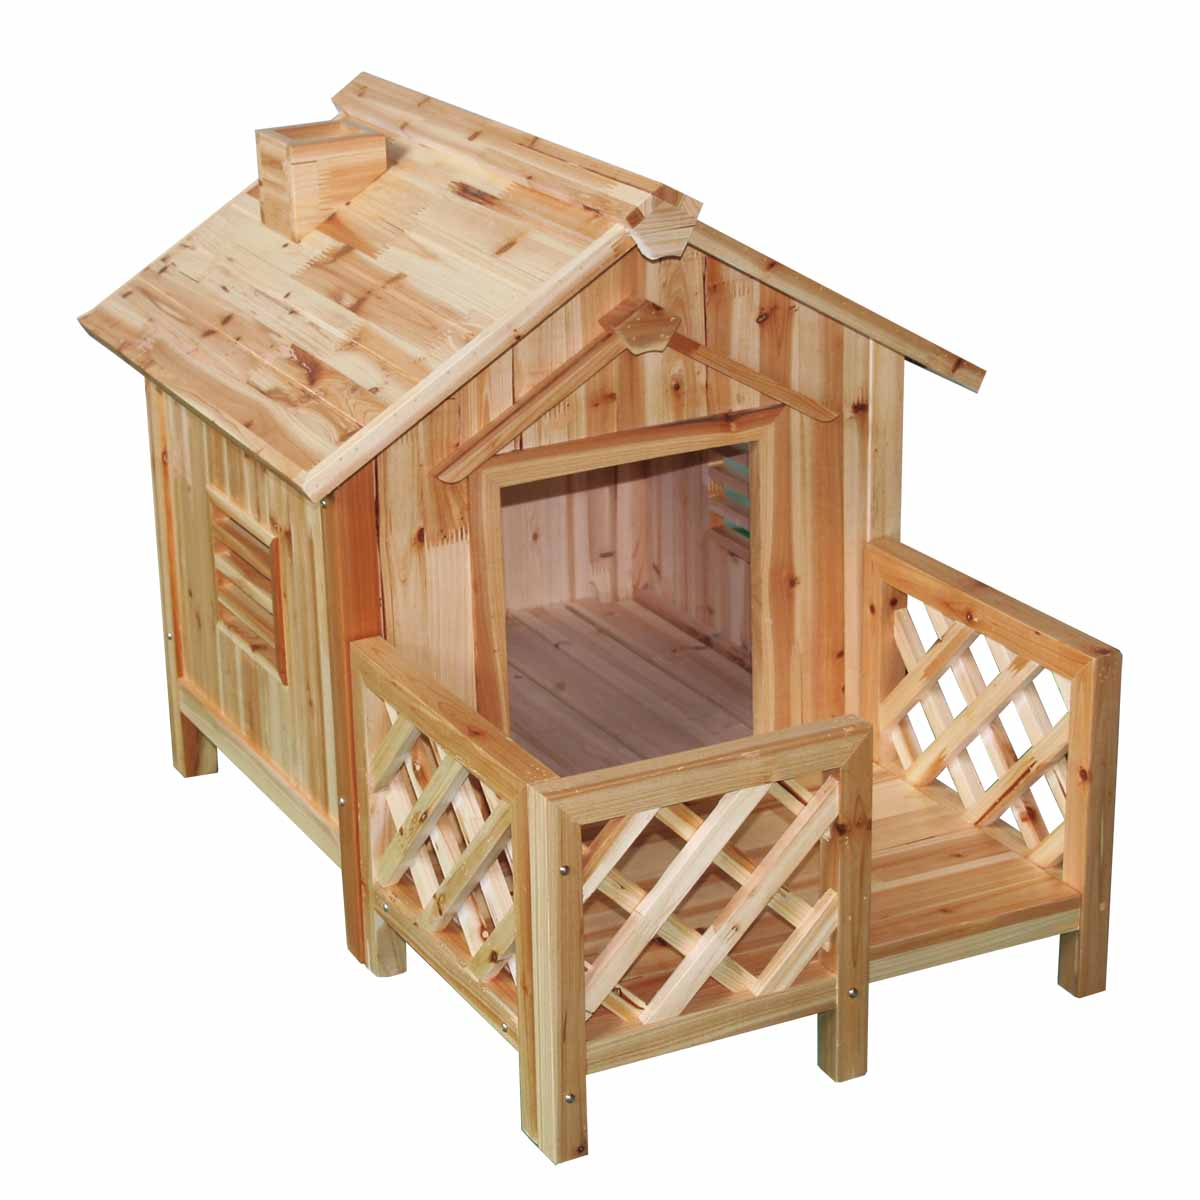 Very Impressive portraiture of Details about Wood Dog House Outdoor Wooden Pet Shelter Bed M w/ Porch  with #A54E26 color and 1200x1200 pixels